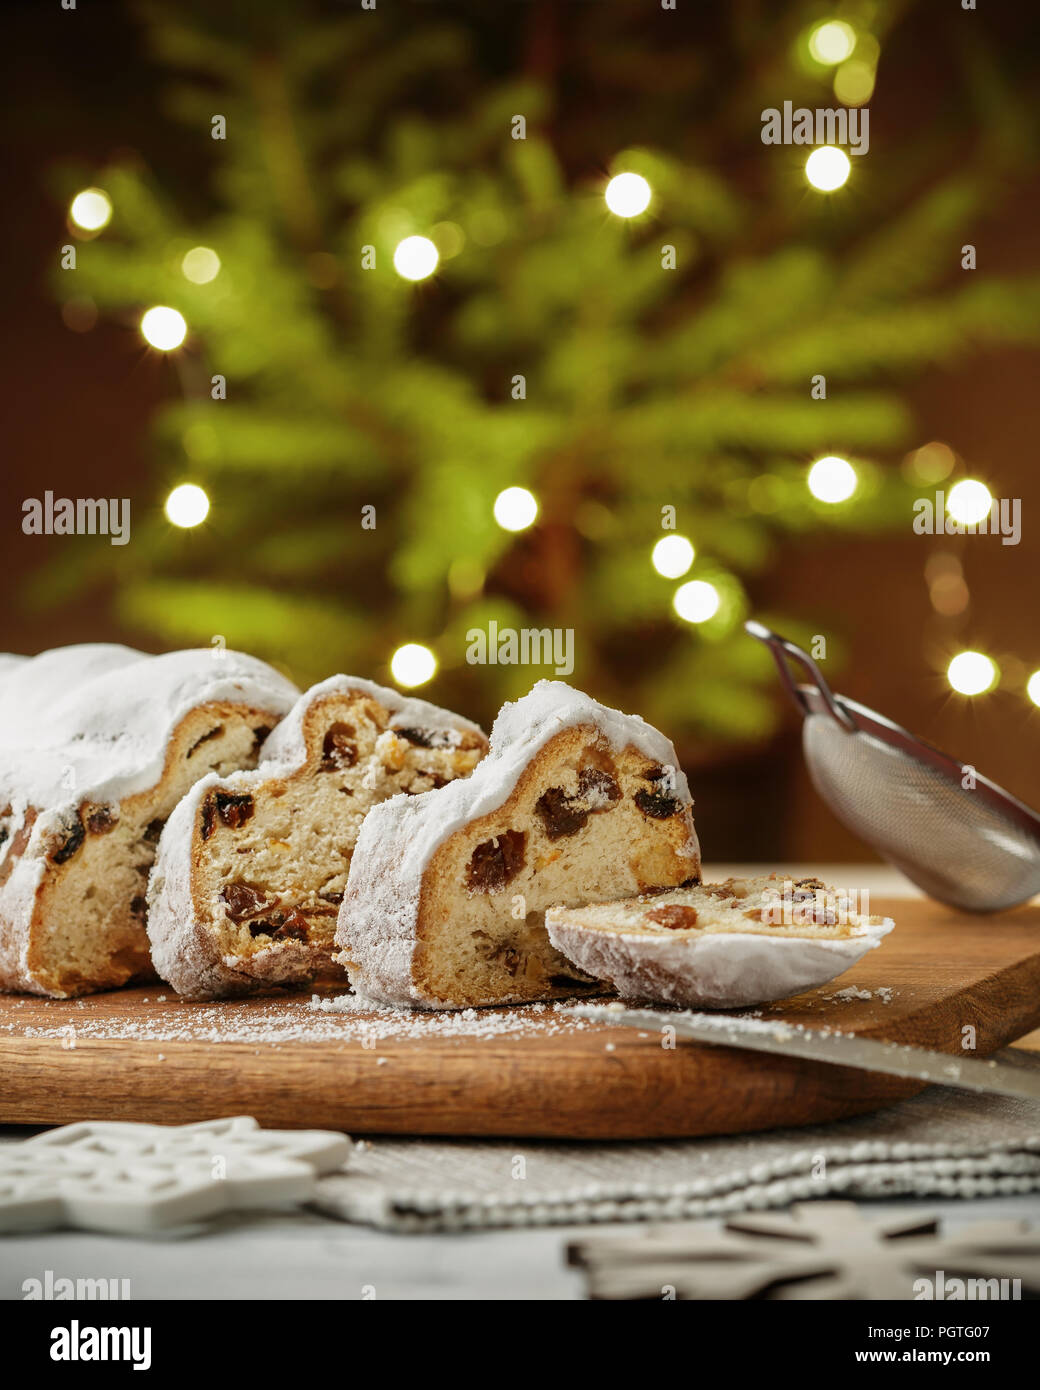 Stollen, traditional German Christmas yeast cake with raisins on the table, fir tree lights bokeh on the background - Stock Image